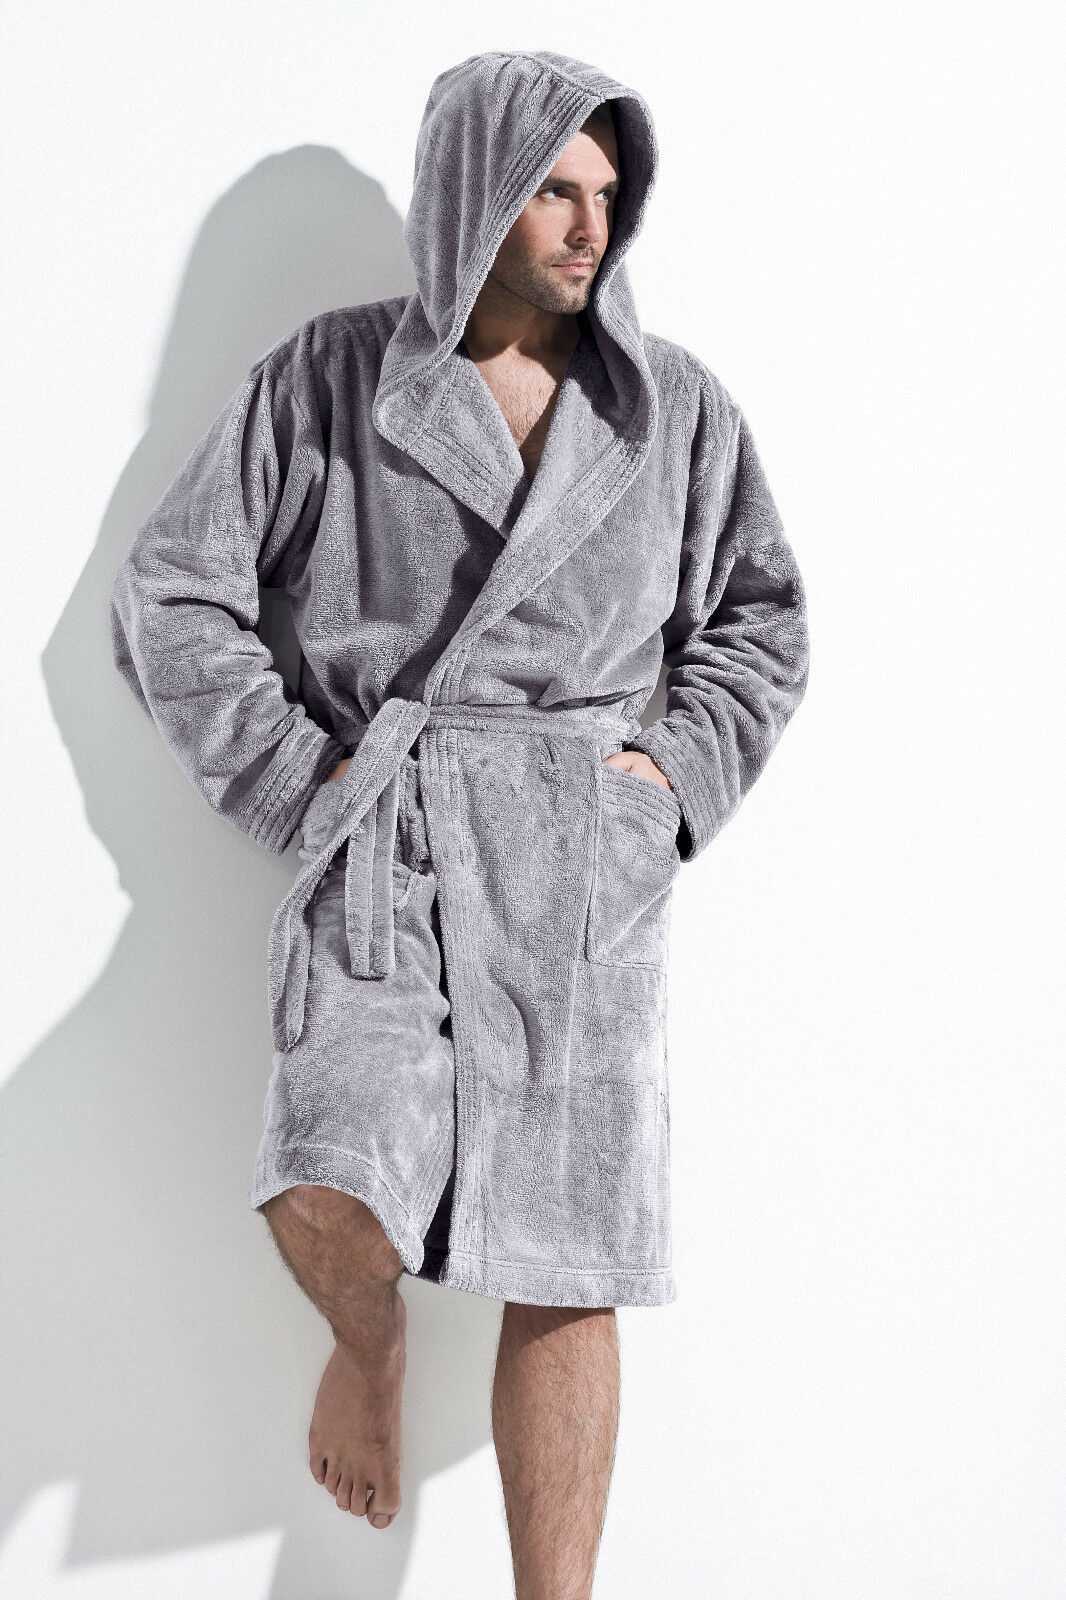 mens luxury knee length dressing gown bathrobe with hood robe size m l xl xxl ebay. Black Bedroom Furniture Sets. Home Design Ideas